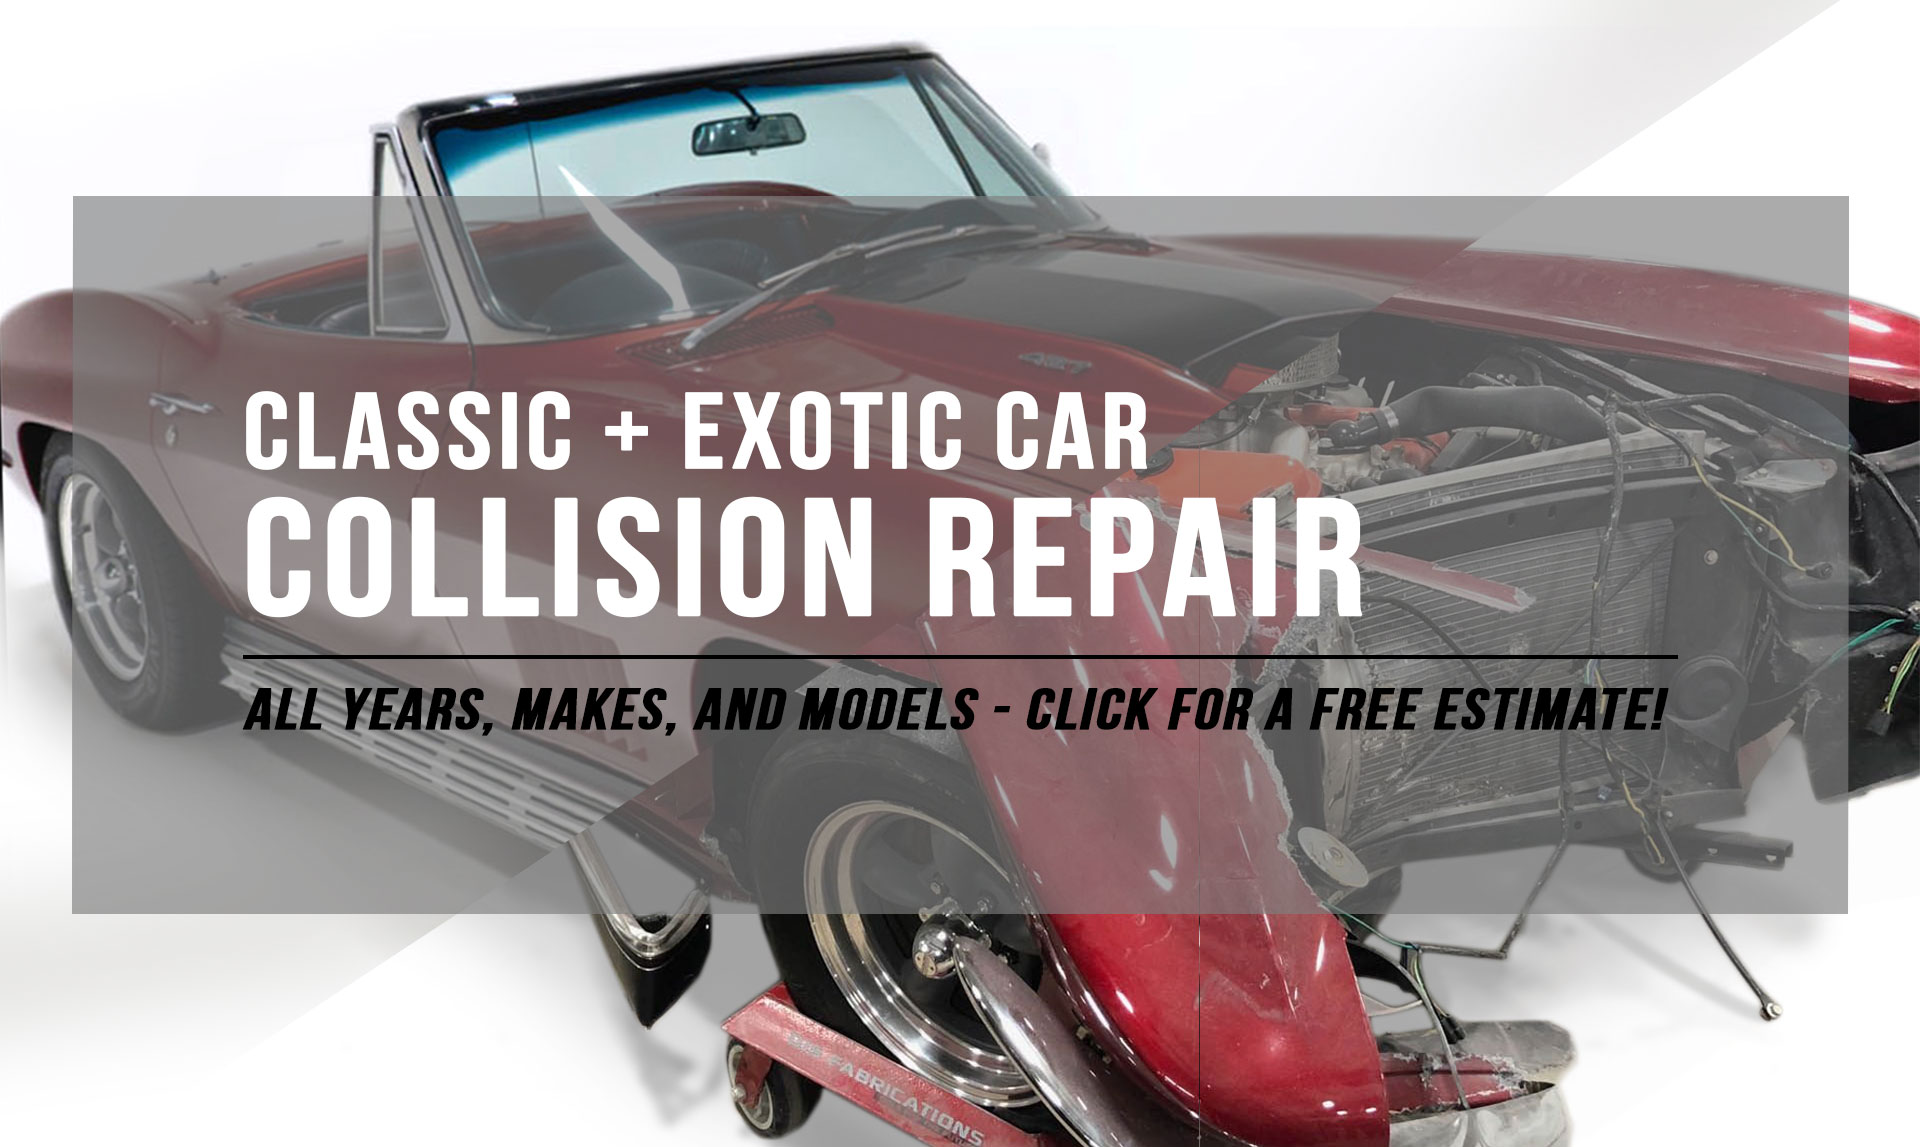 Collector Car Classic Car Collision Repair